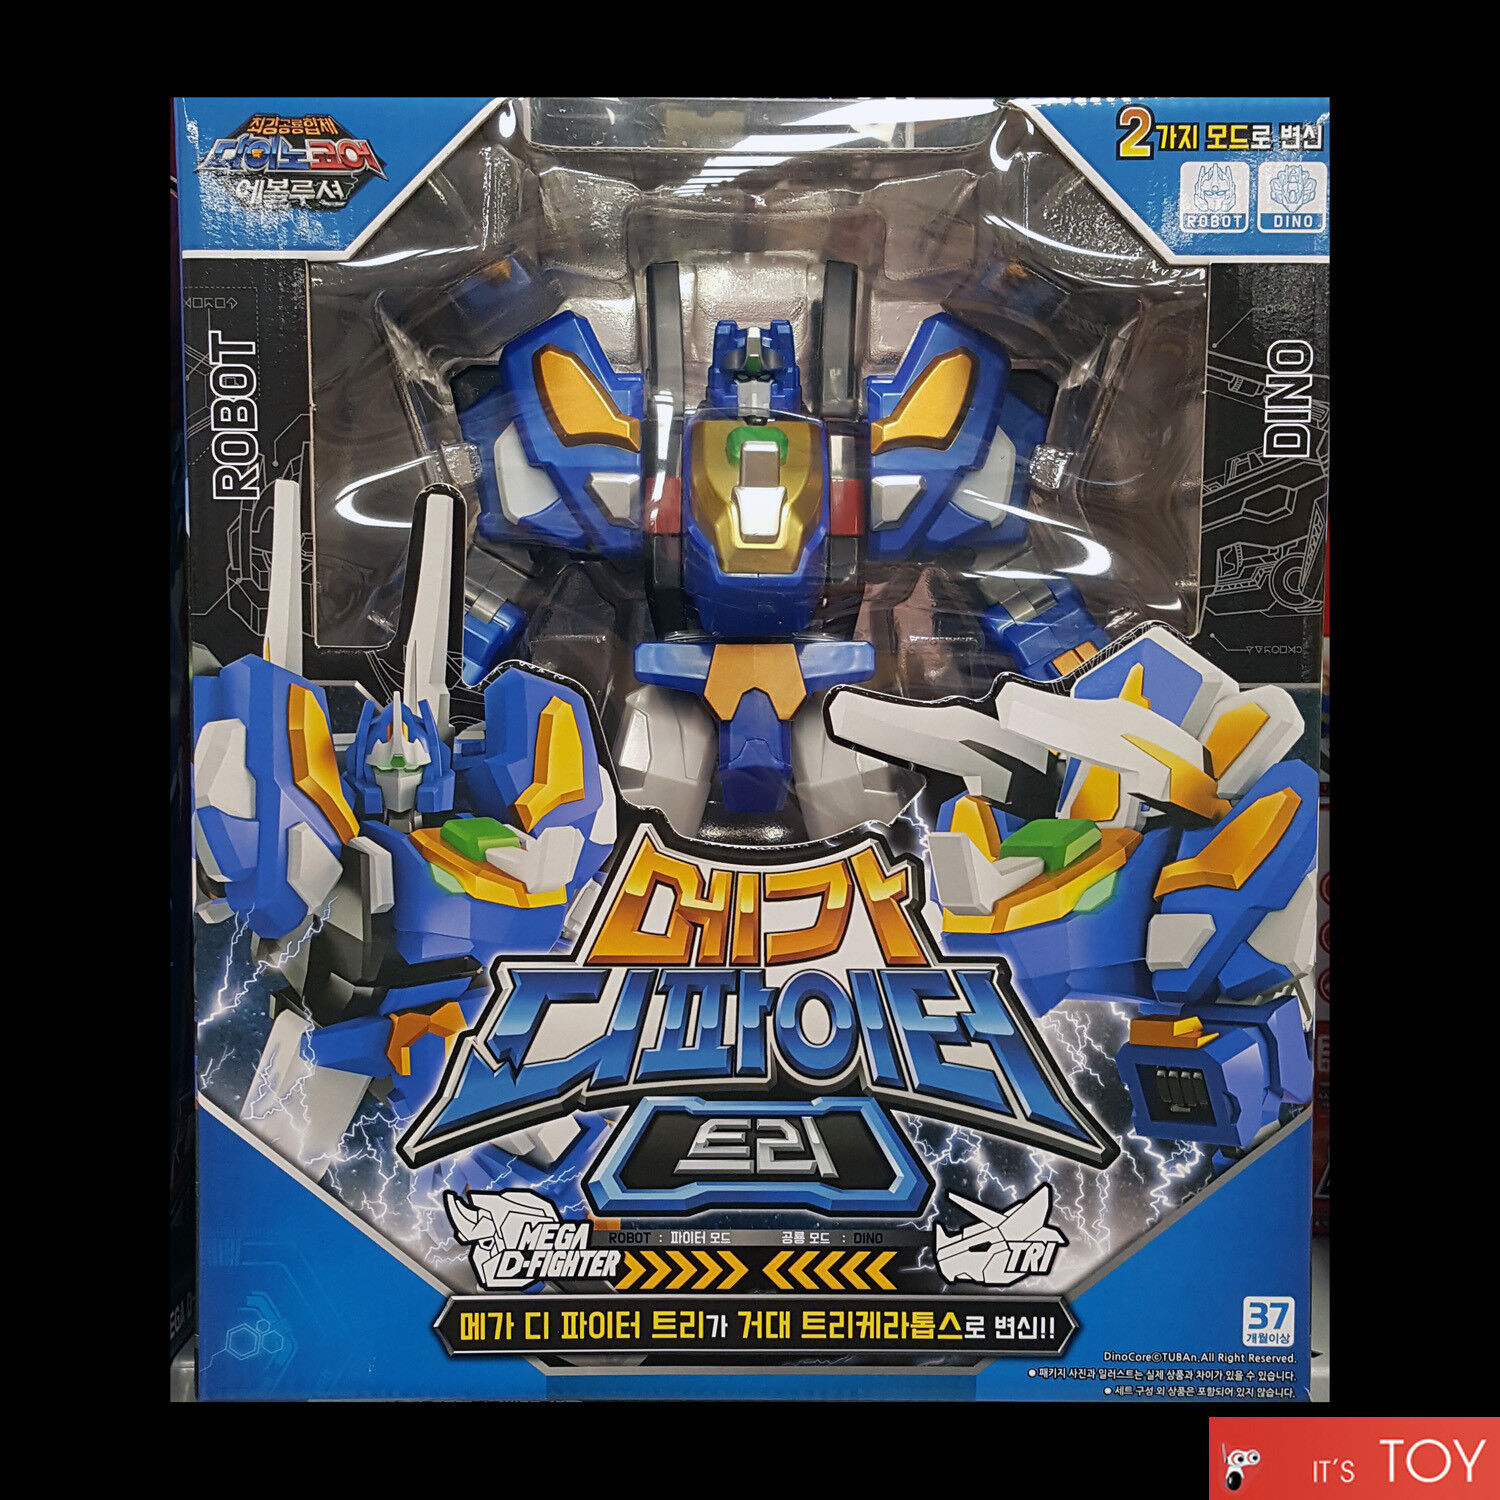 Dino Core Season 4 Evolution Mega D-Fighter TRI Transforming Robot Toy